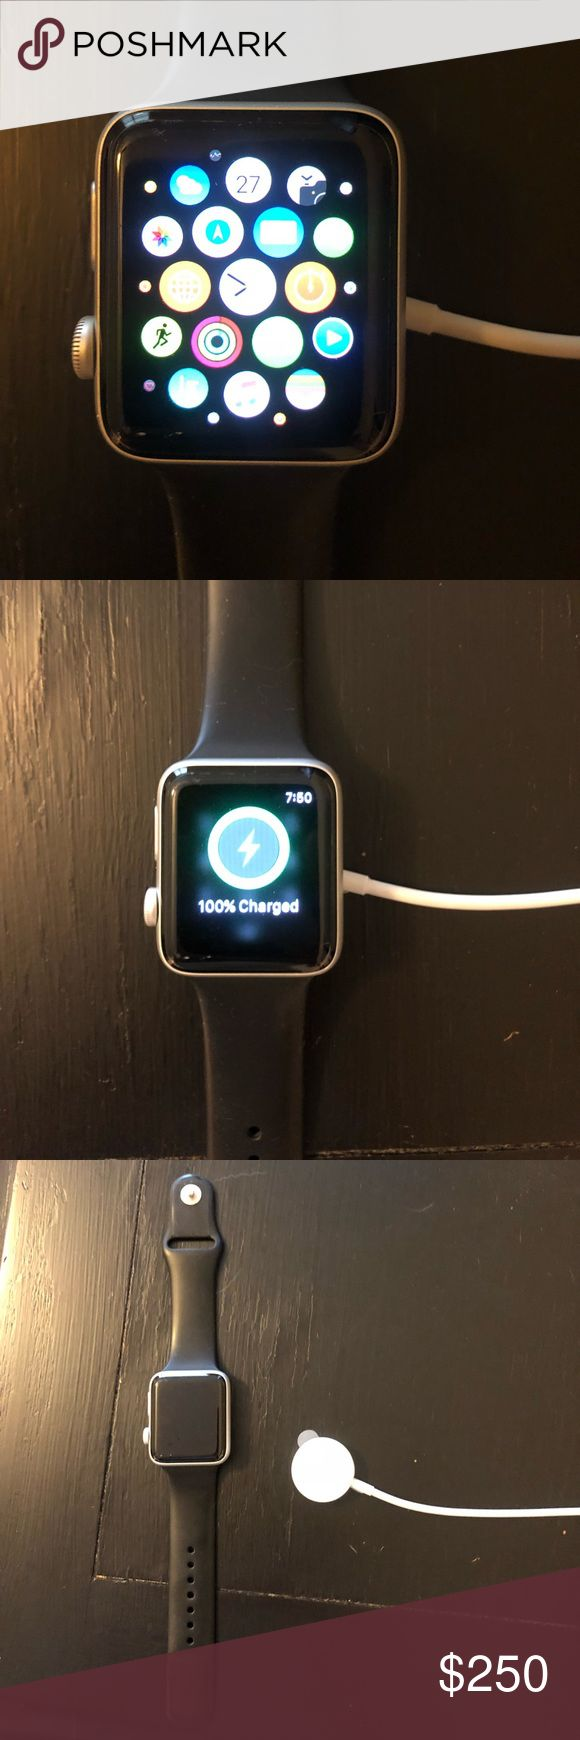 42 mm series 2 Apple Watch (water resistant) I have a 42mm series 2 Apple iwatch (water resistant) for sale. I still have the original band it came with, original box and charger. The watch has Apple care on it until December 2018, it has also had a zagg screenprotector on it since the day of purchase. There's nothing wrong with the watch, I just updated to the latest model and no longer need this one. Other